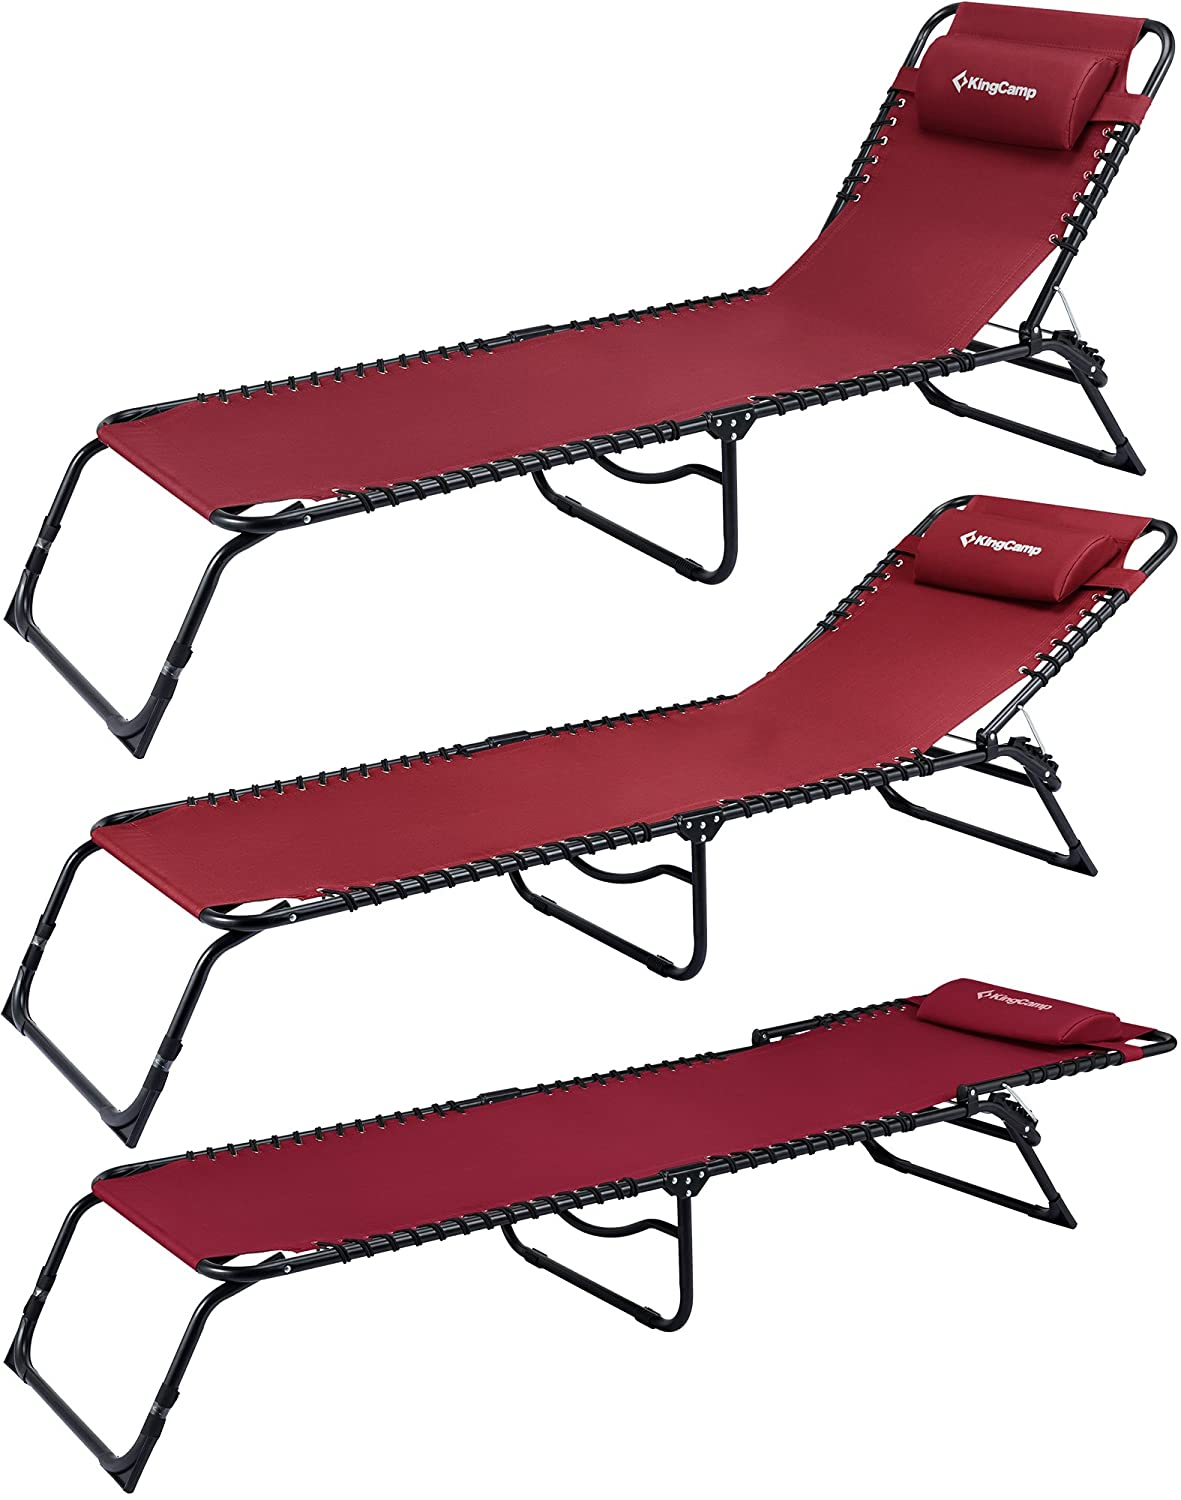 Amazon.com : KingCamp Patio Lounge Chair Chaise Bed 3 ...